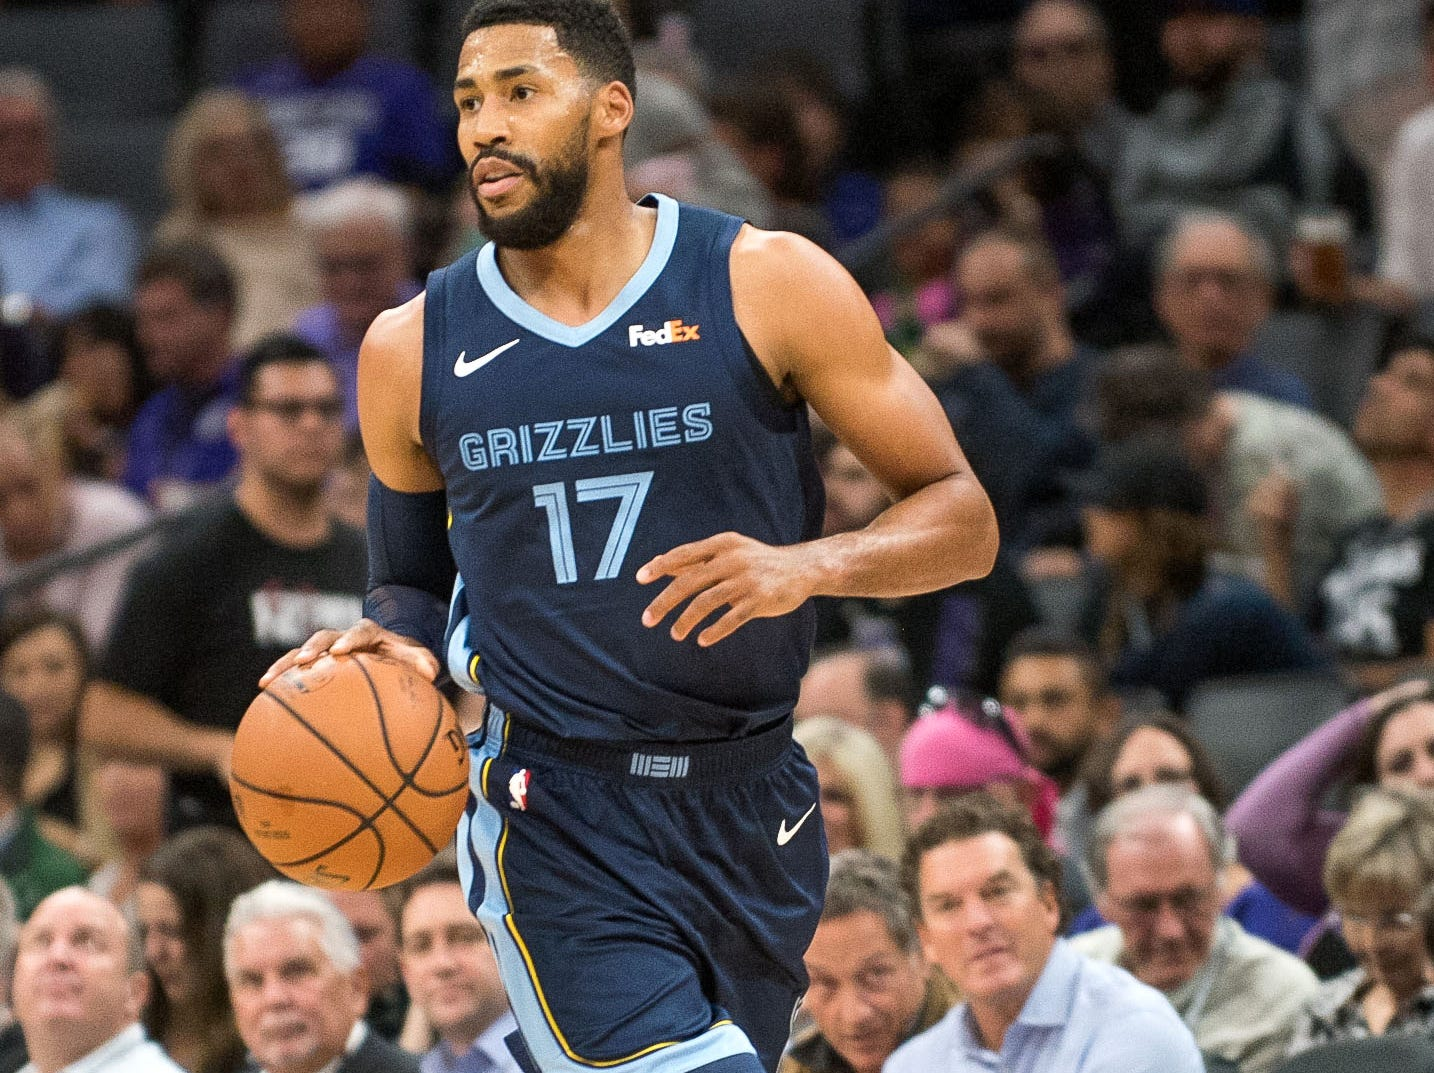 Oct 24, 2018; Sacramento, CA, USA; Memphis Grizzlies guard Garrett Temple (17) pushes the ball up the court during the first quarter against the Sacramento Kings at Golden 1 Center.